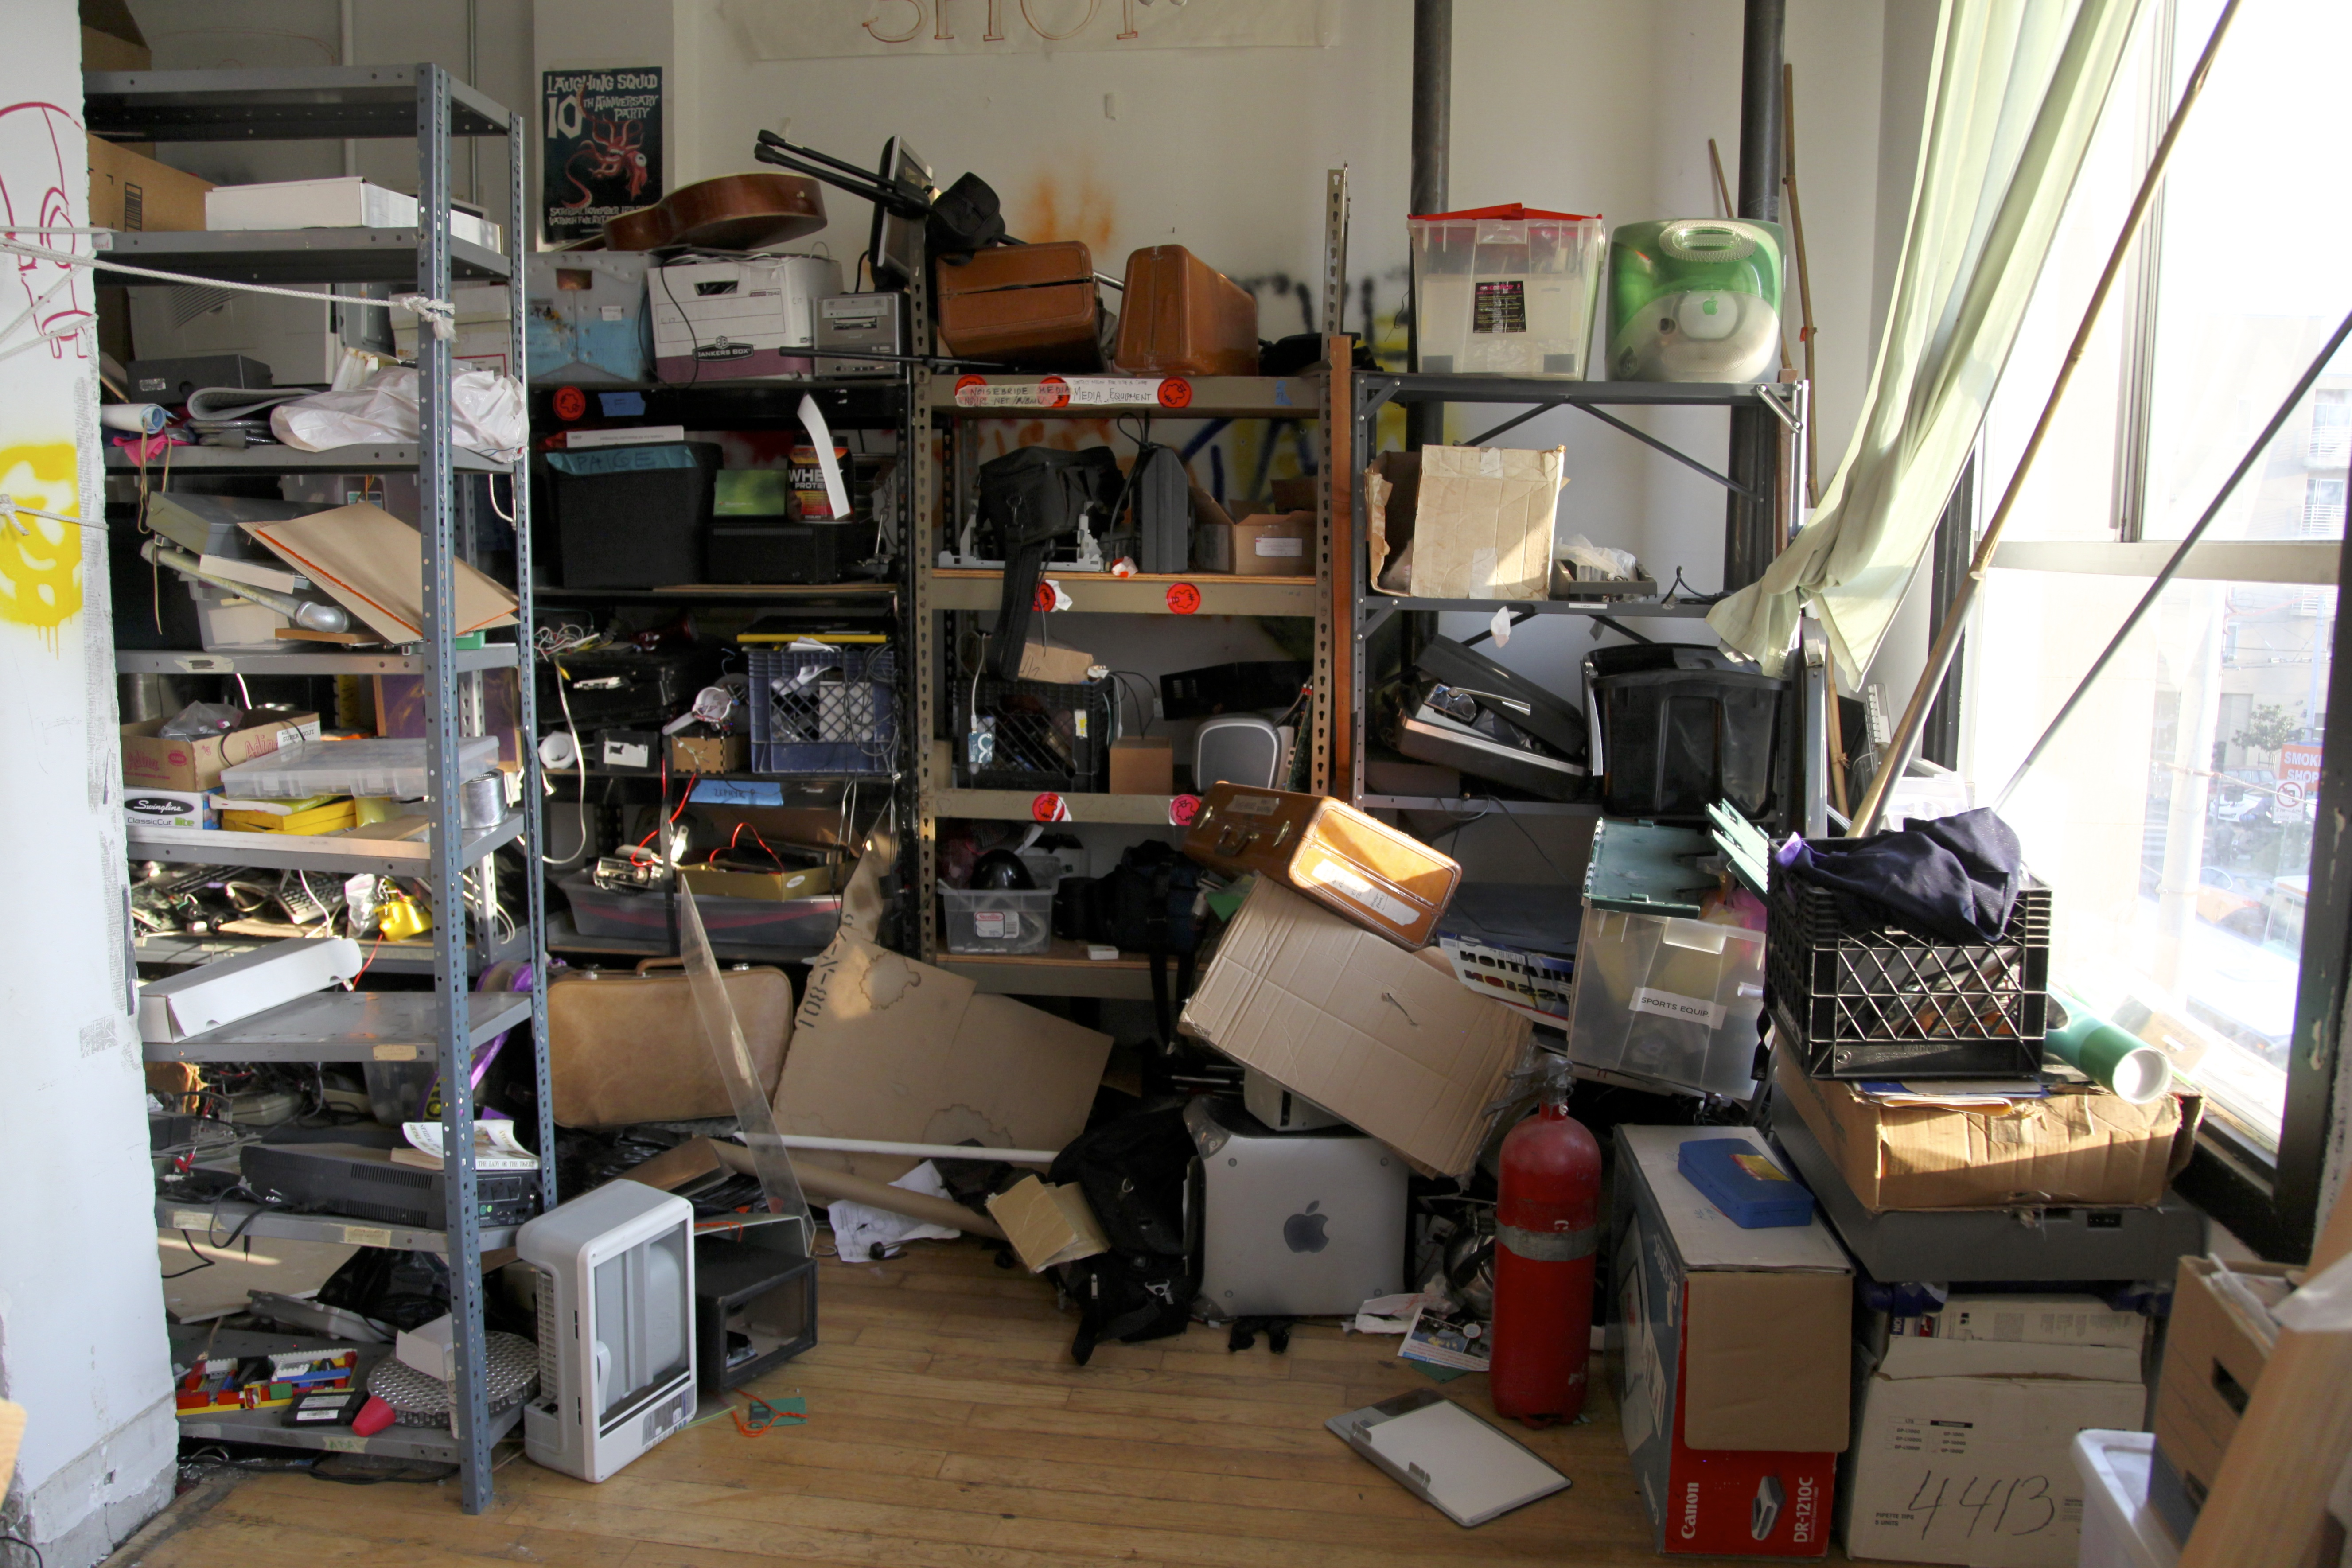 Paying members receive few benefits, but one of them is storage space within Noisebridge. Photo by Signe Brewster